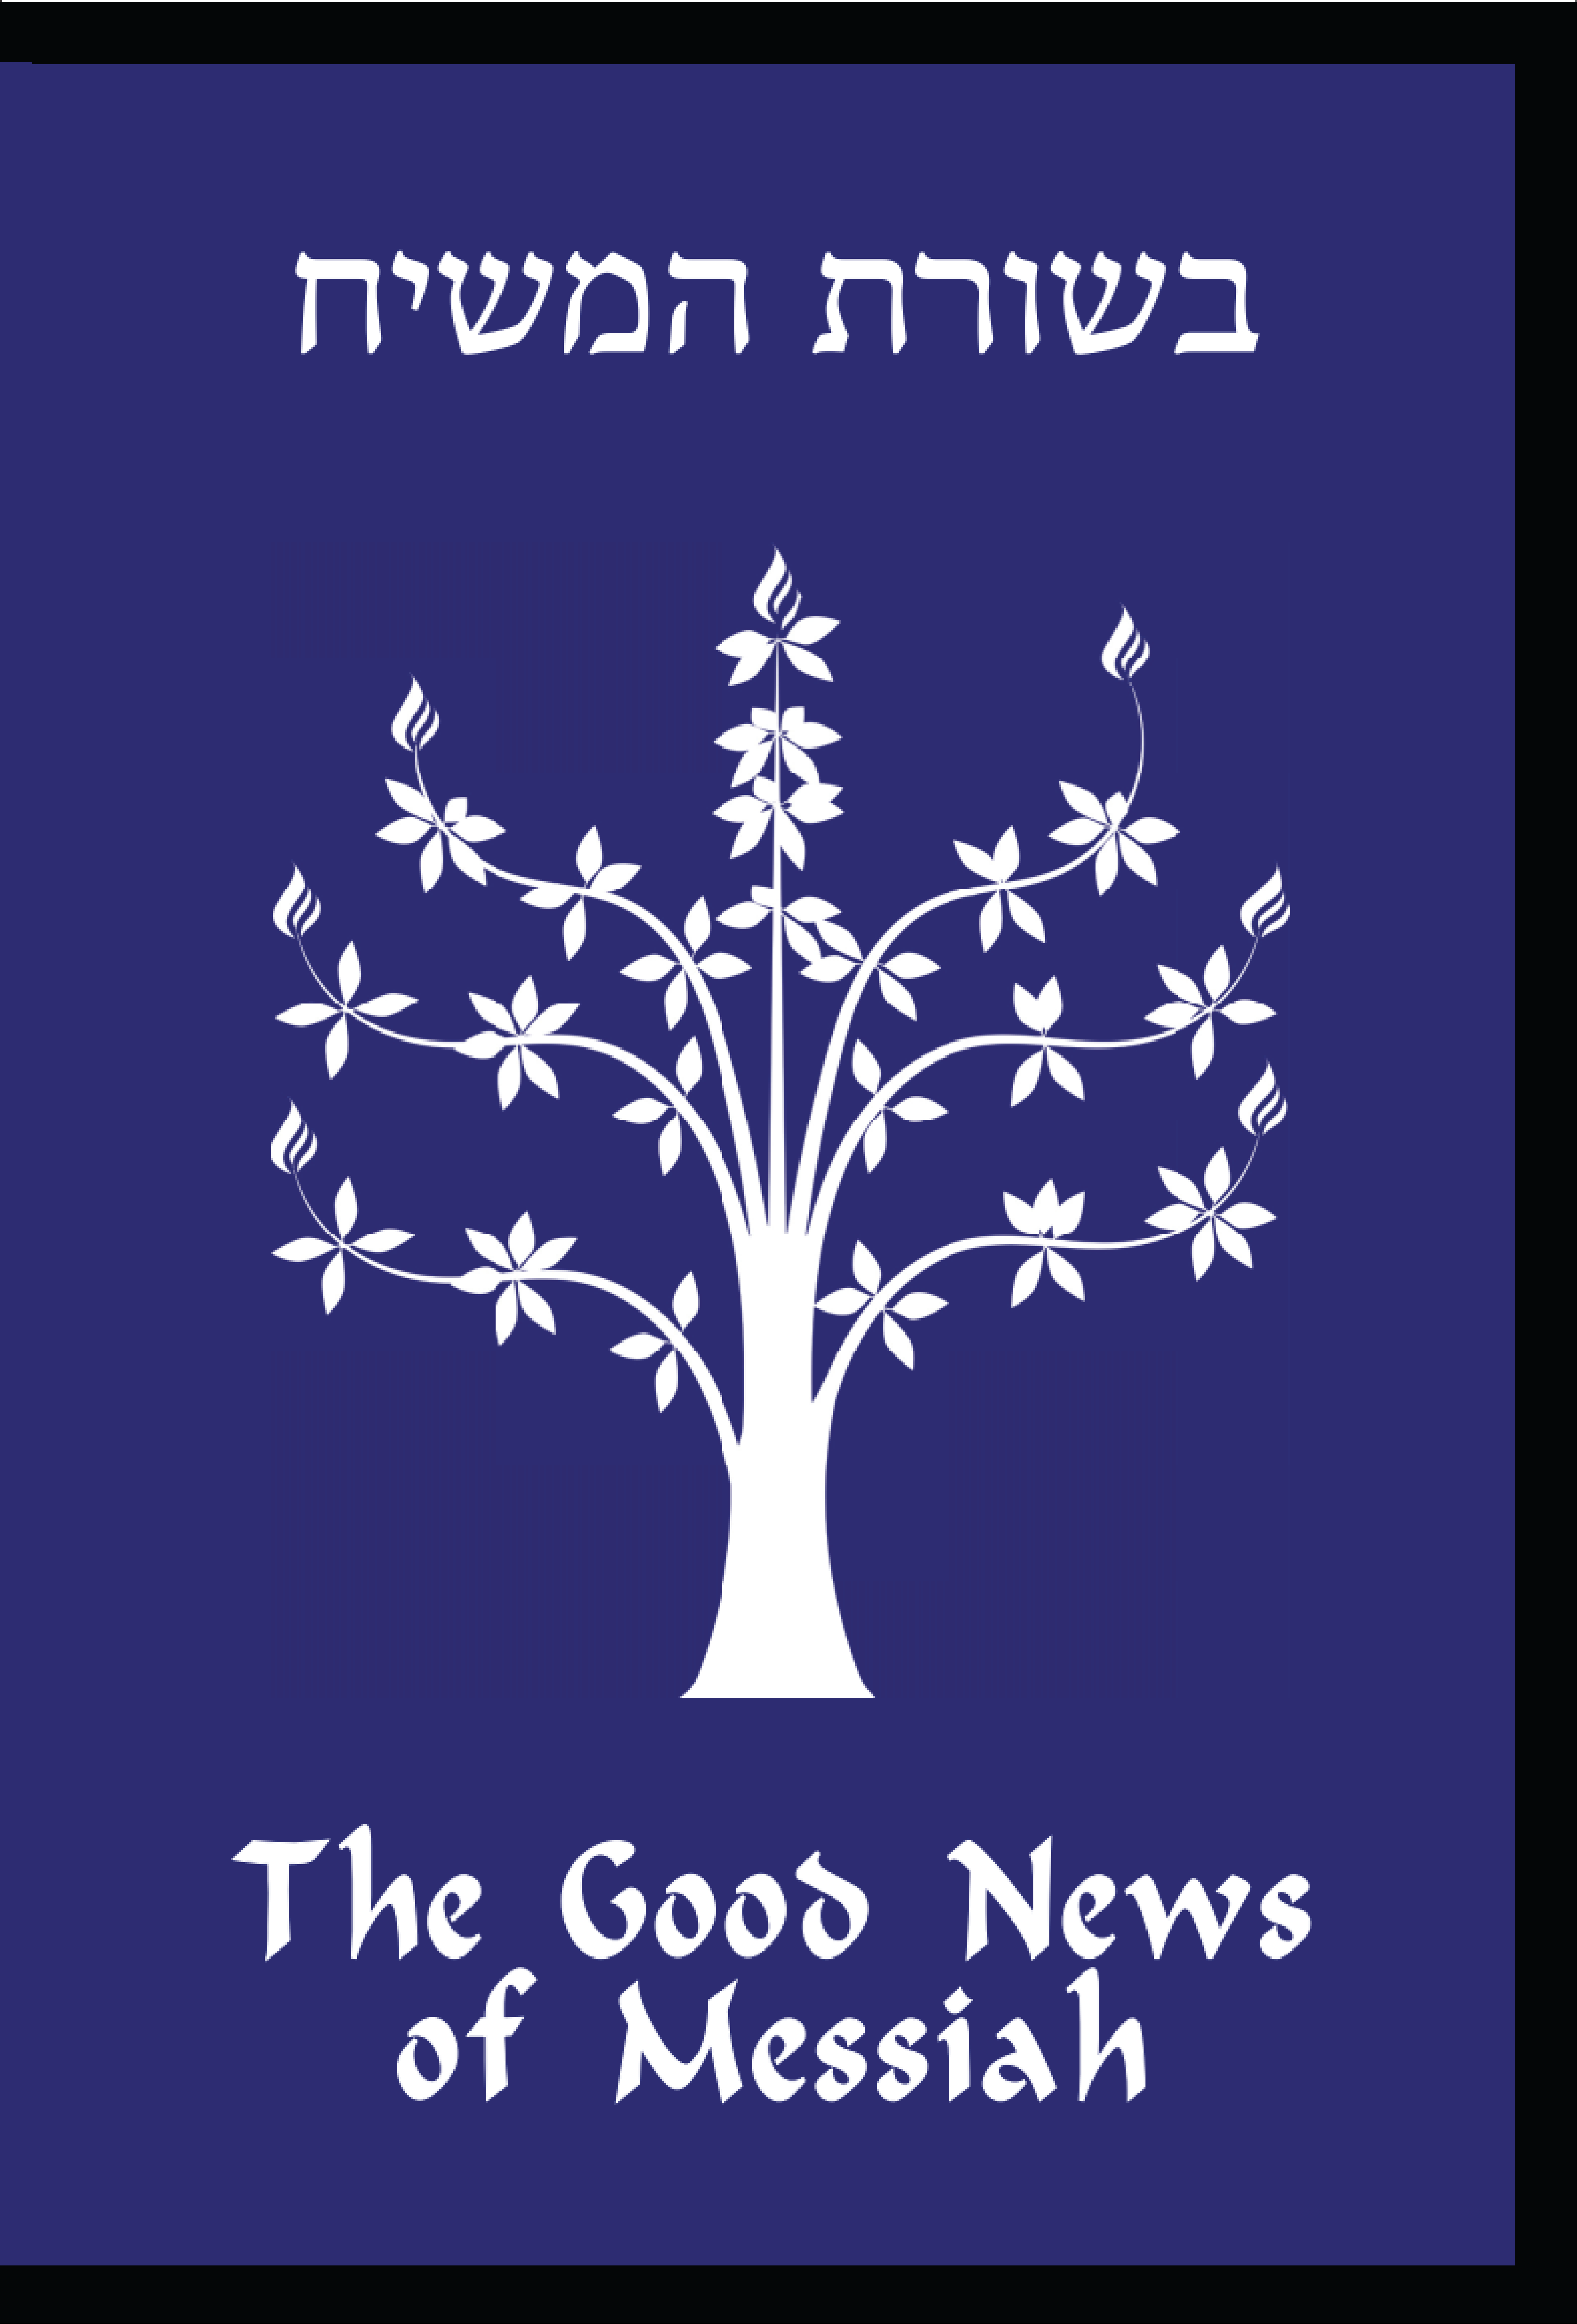 [Cover of The Good News Of Messiah]